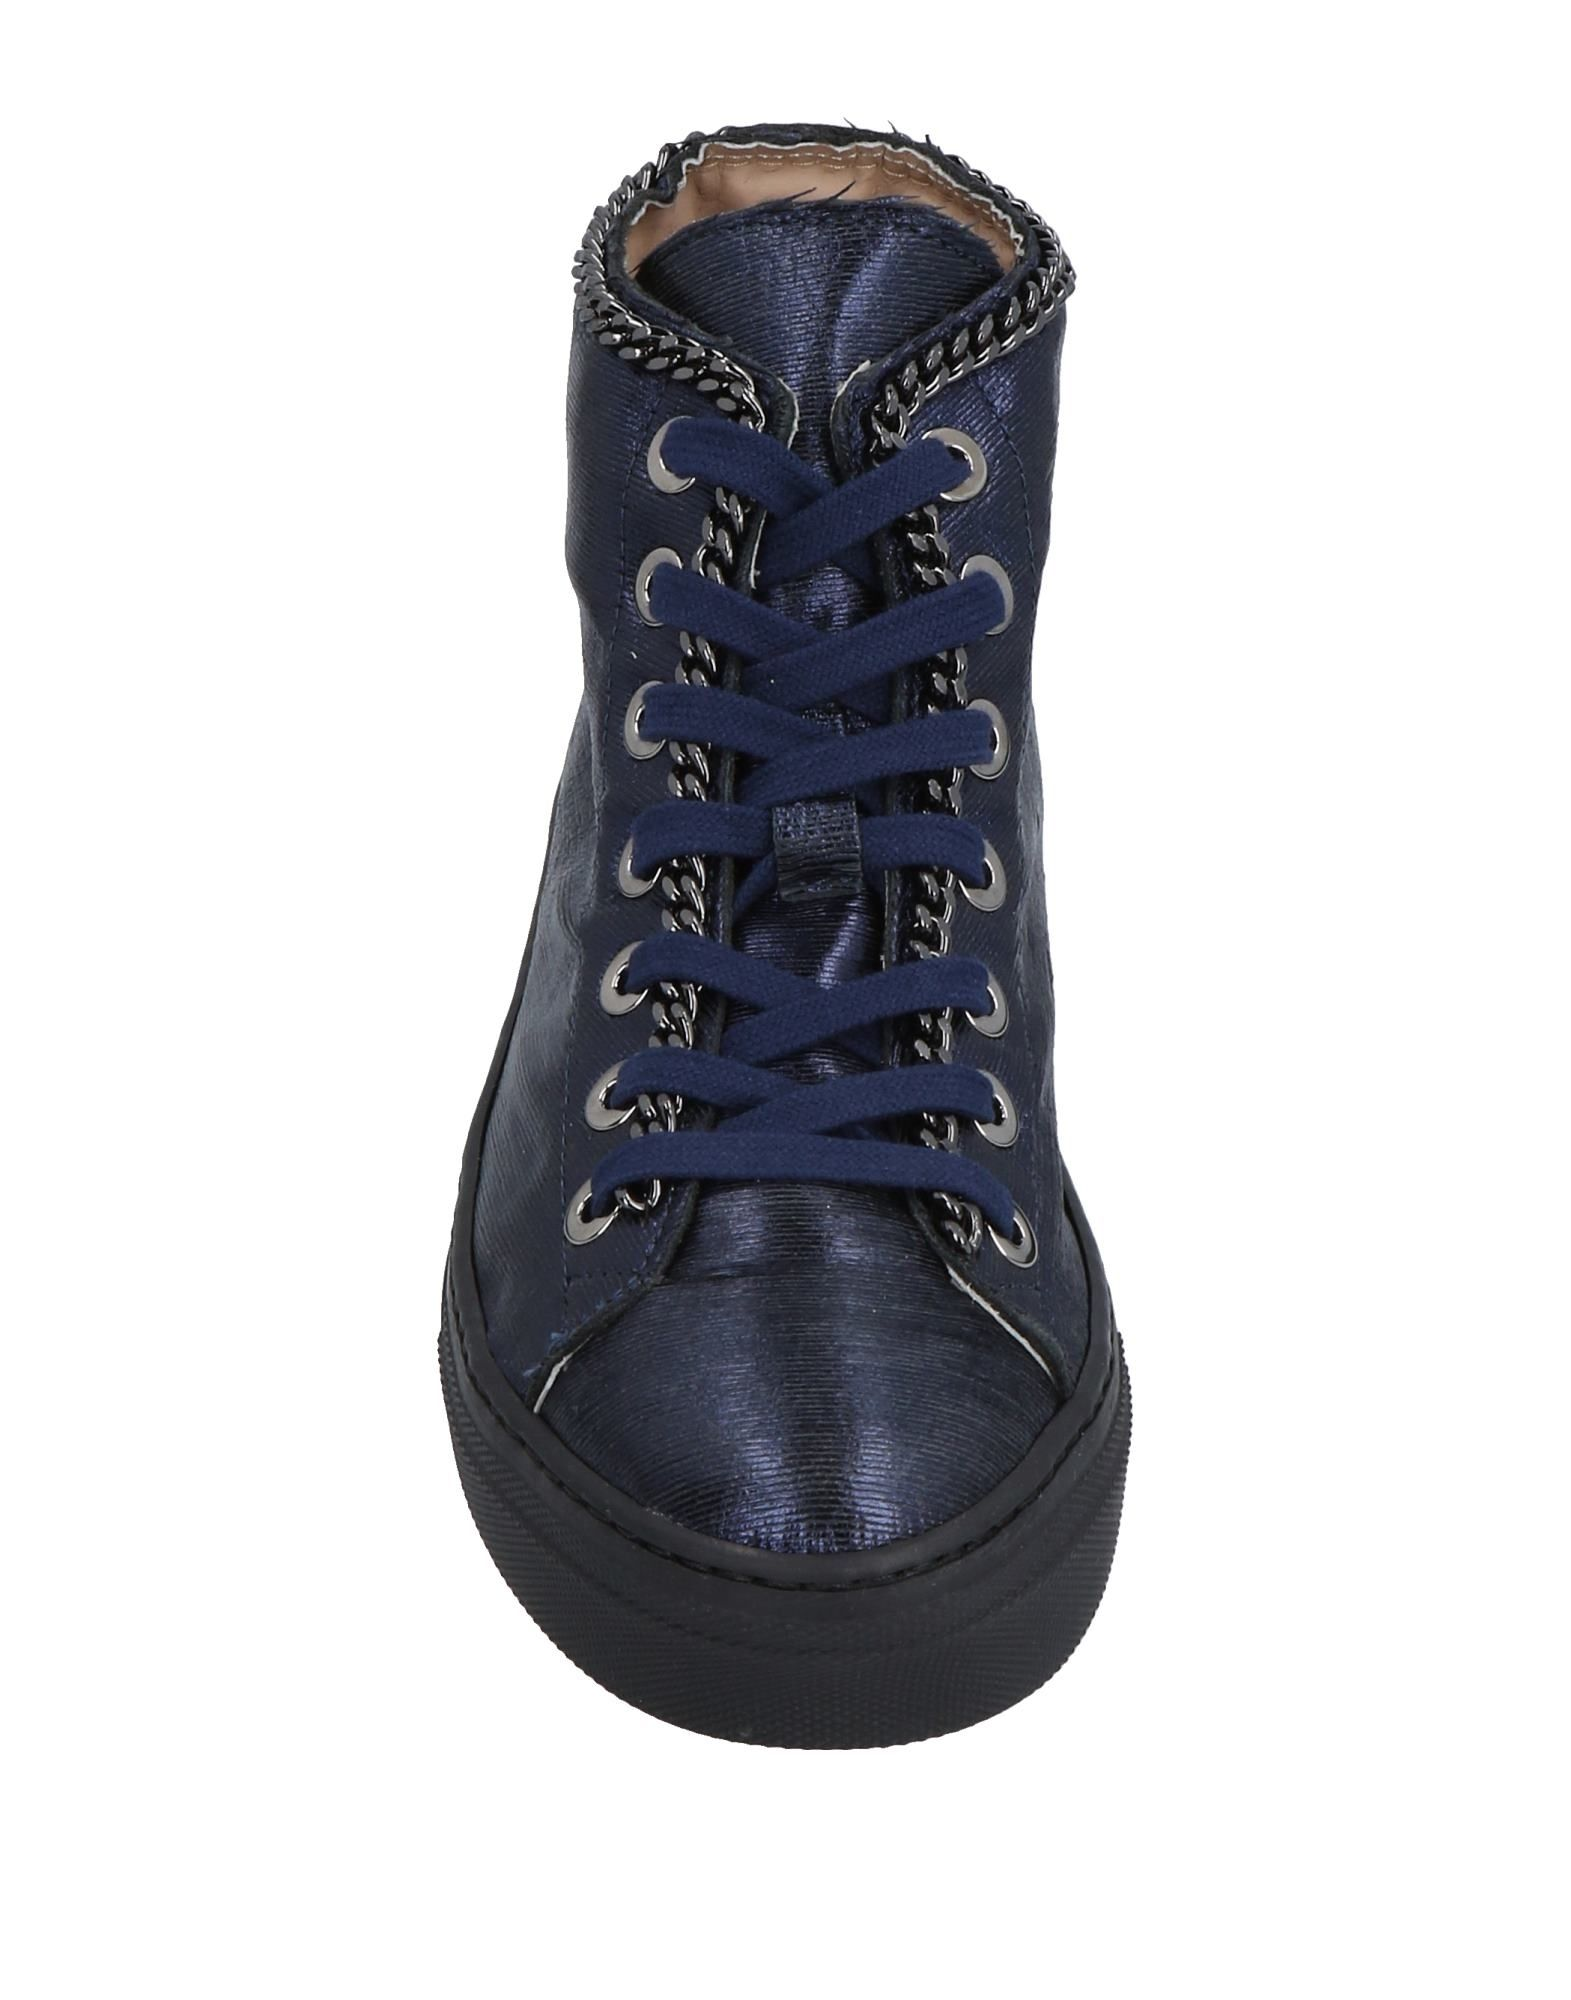 Loretta Pettinari Sneakers - Women Women Women Loretta Pettinari Sneakers online on  United Kingdom - 11494333SJ ee3dff